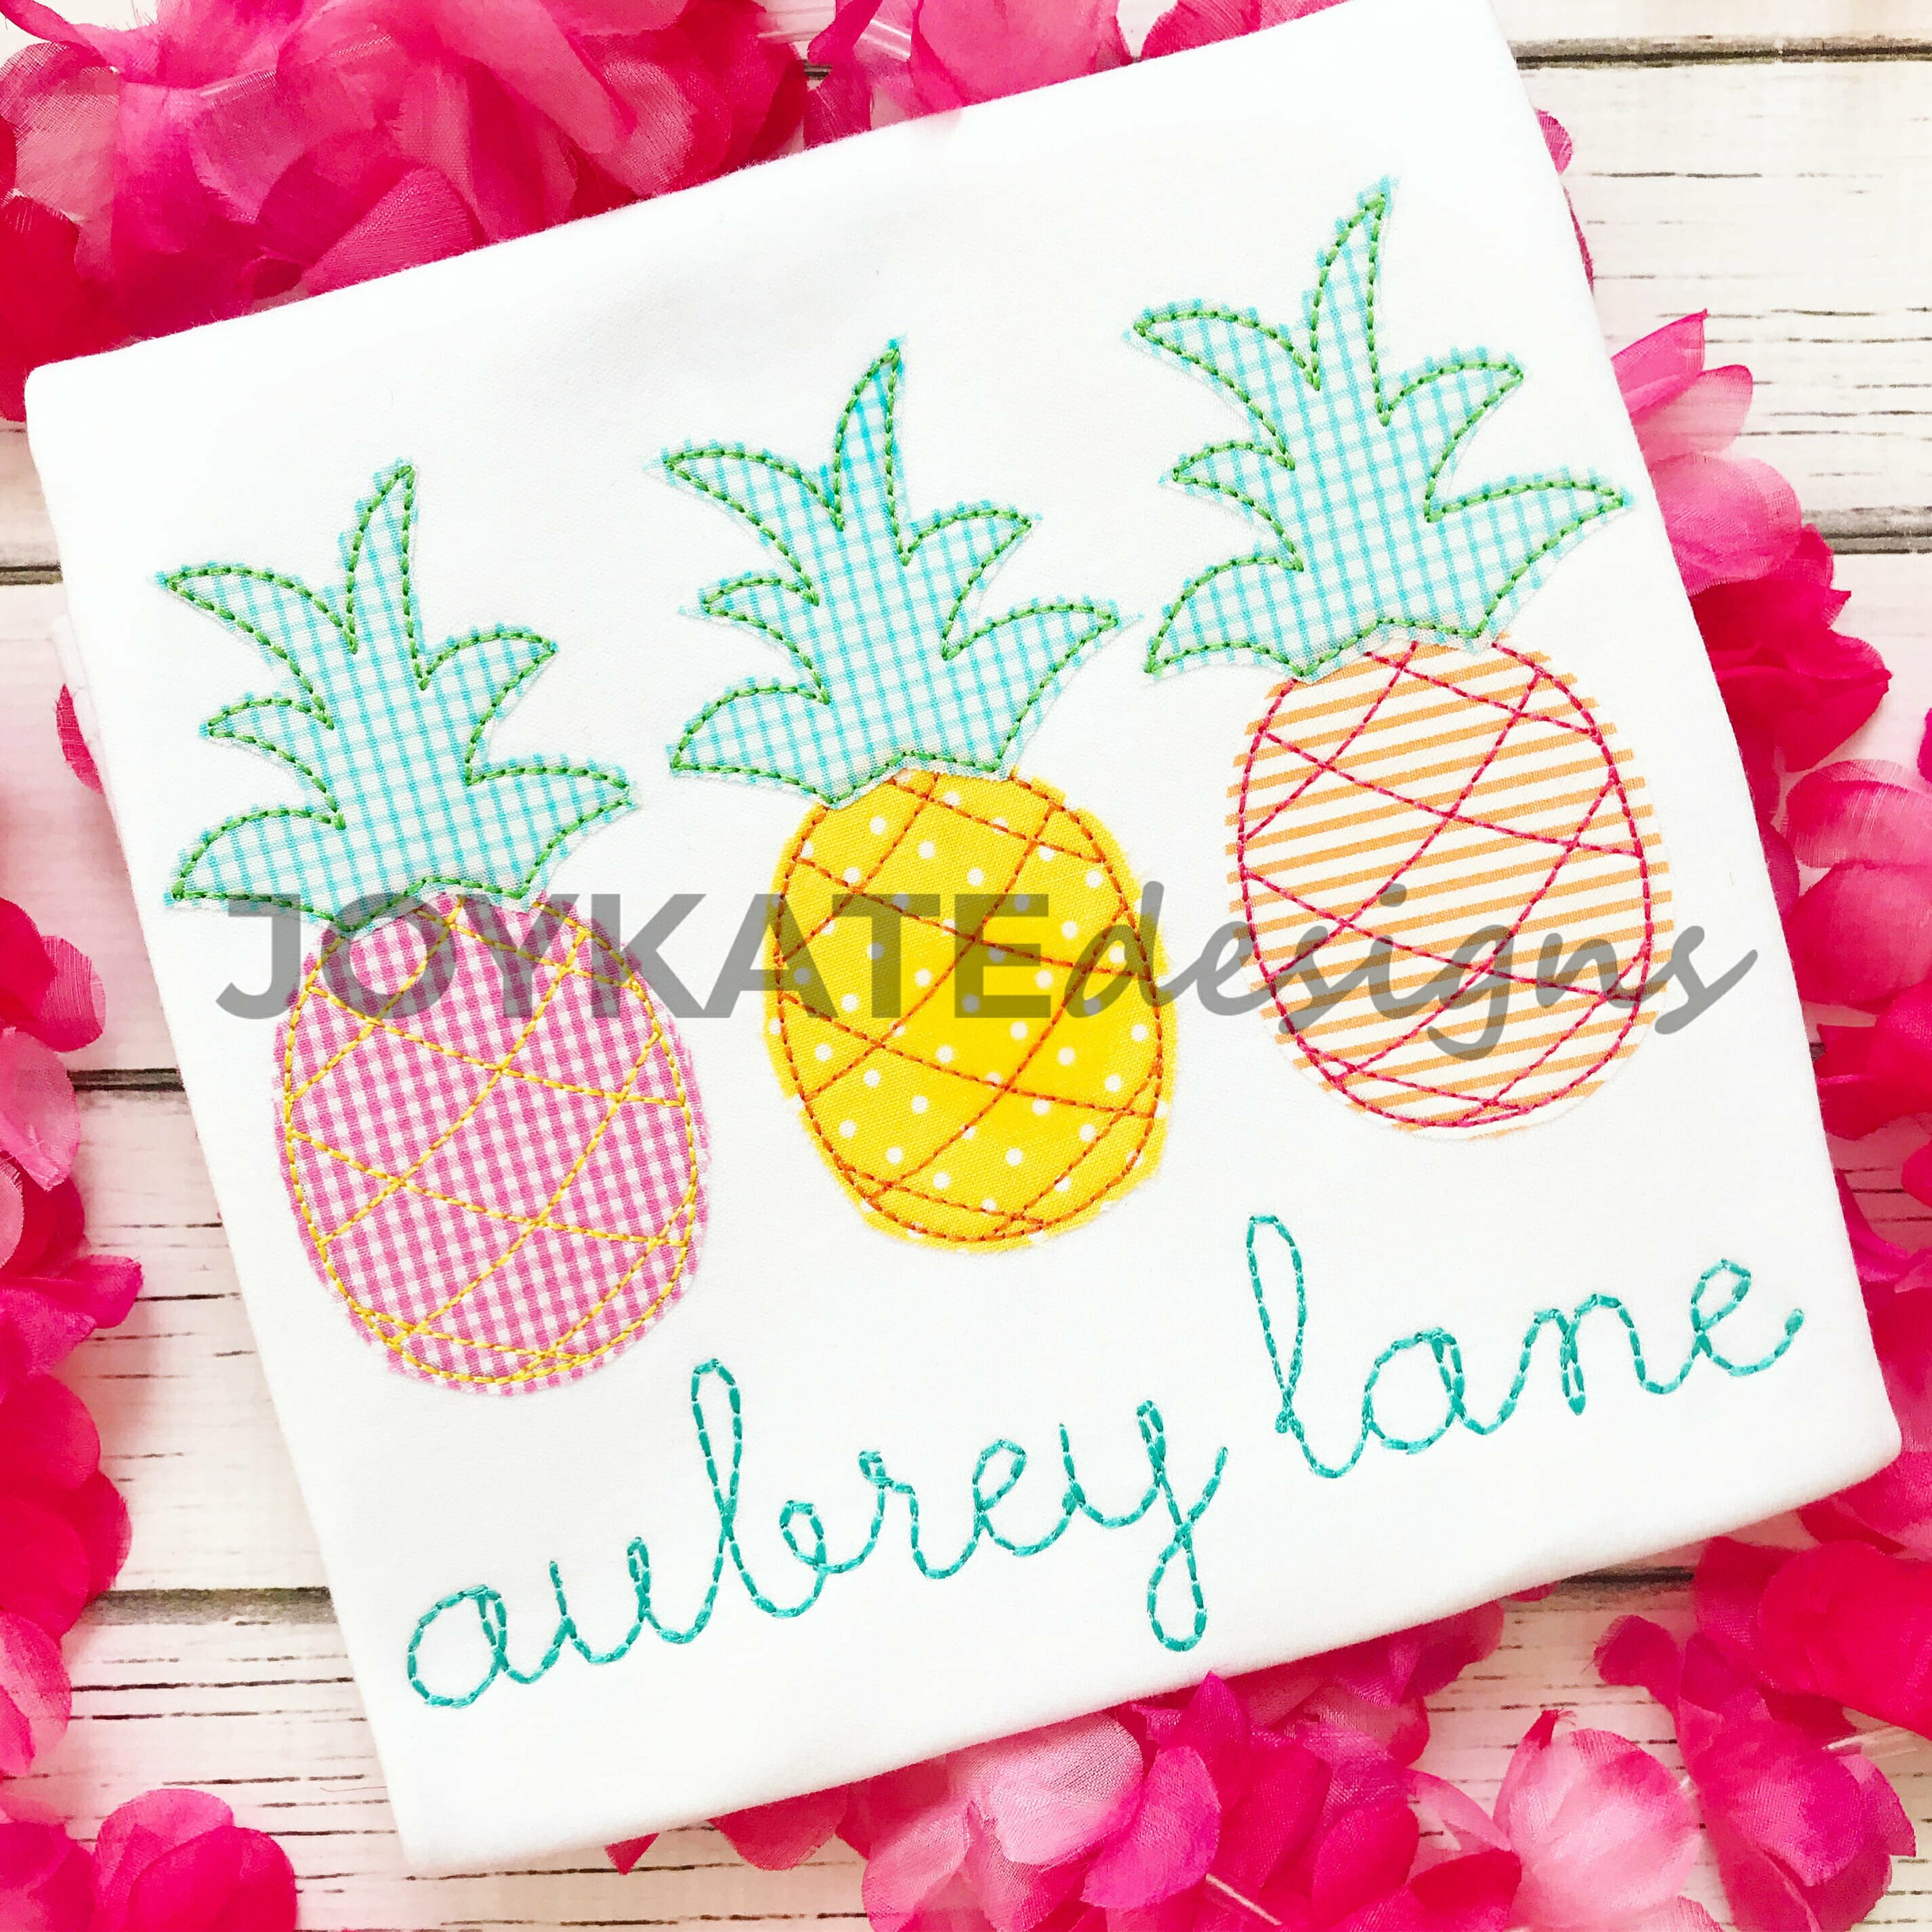 Pineapple Trio Bean Stitch Applique Embroidery Design Joy Kate Designs